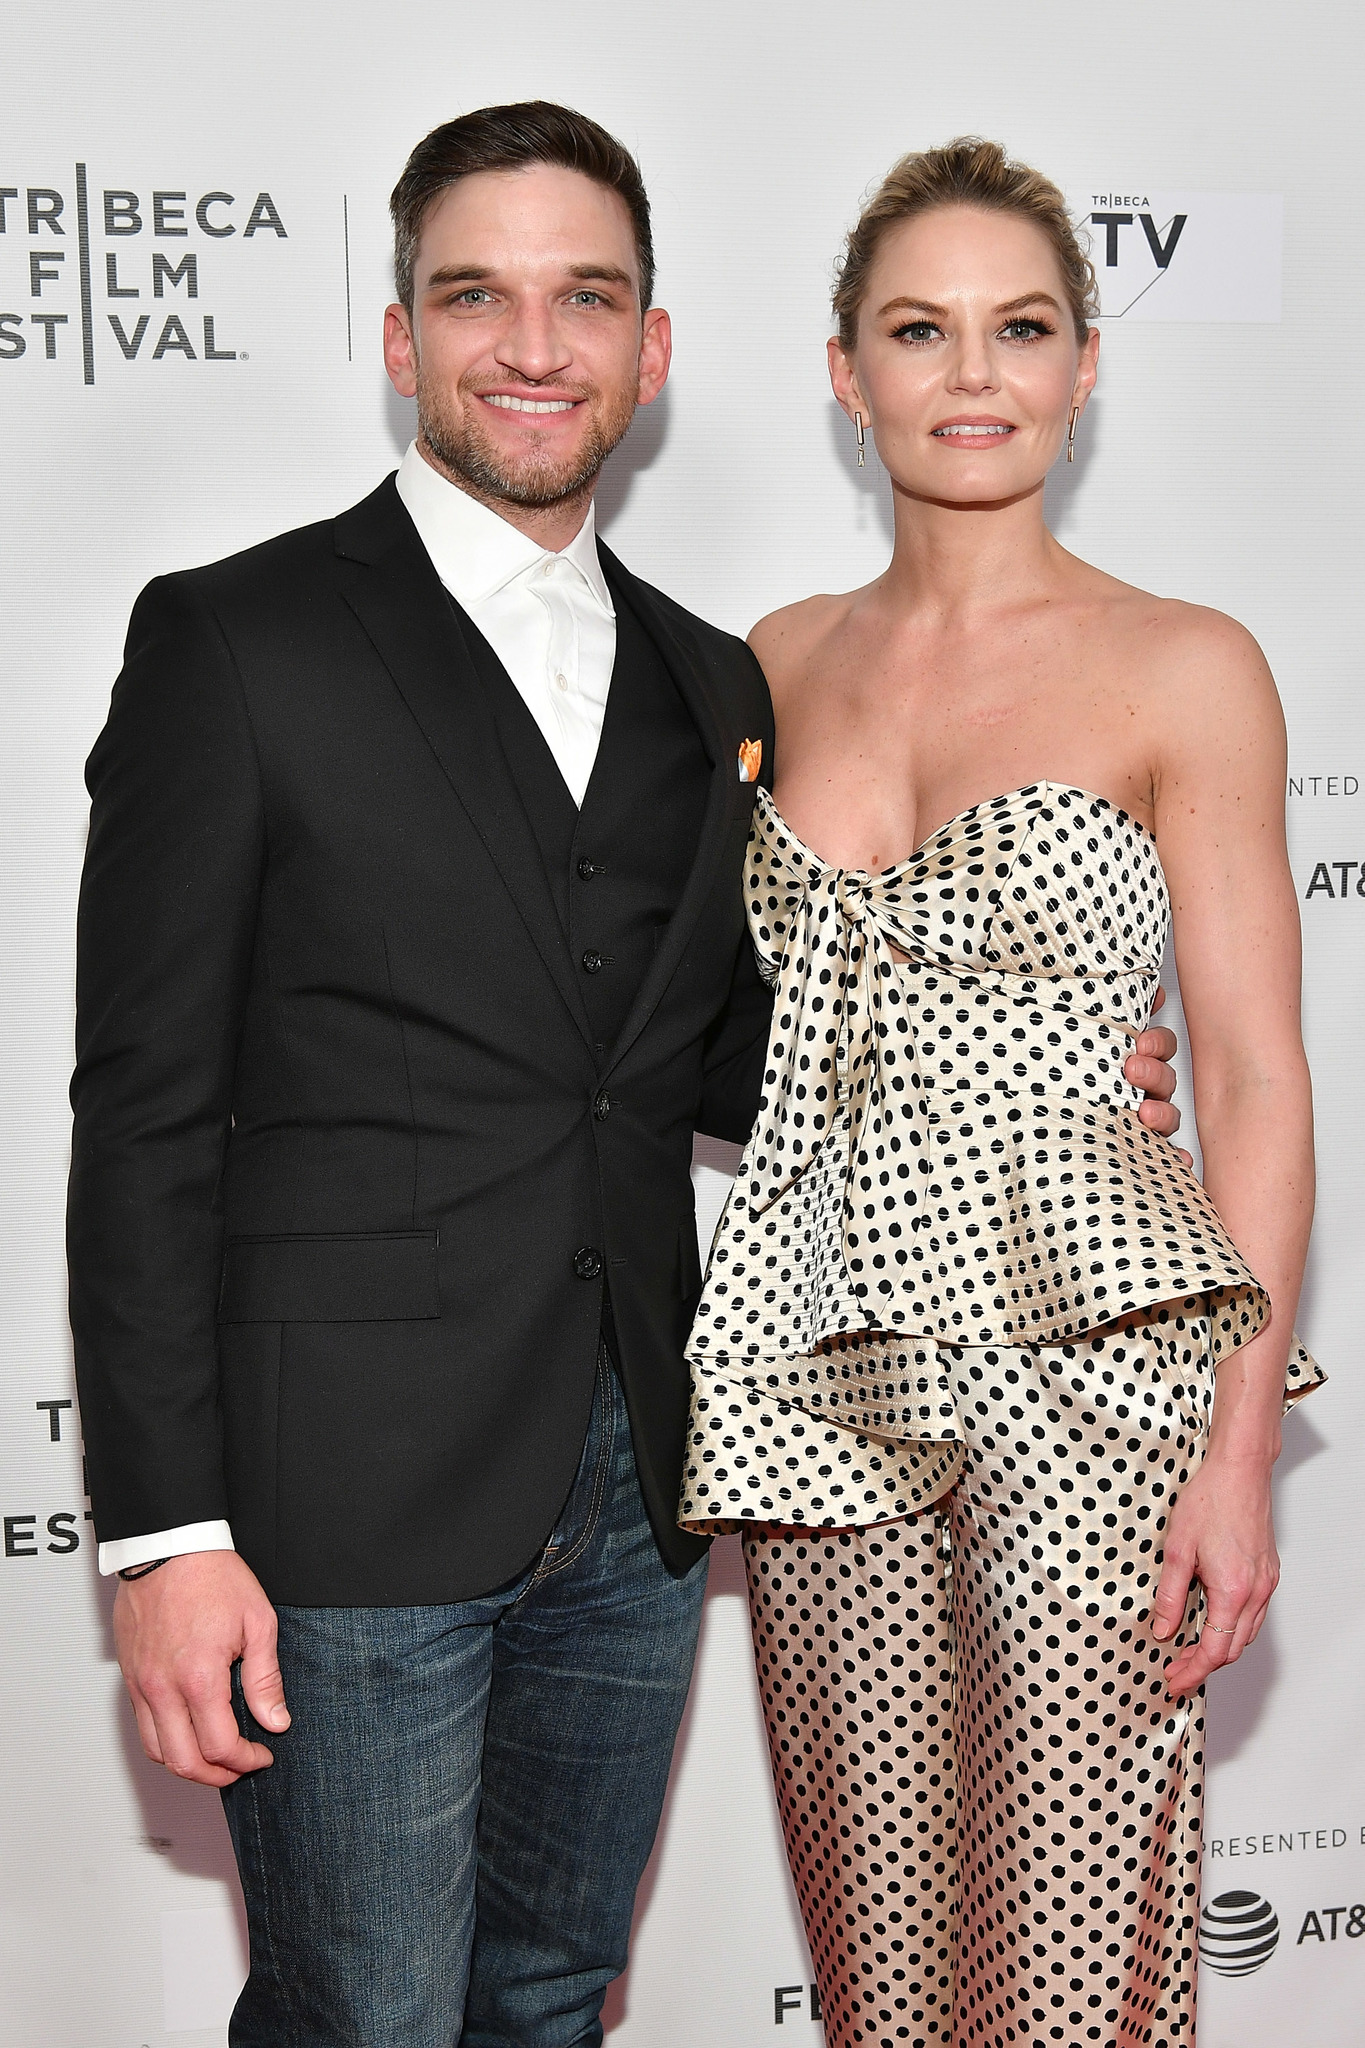 Jennifer Morrison and Evan Jonigkeit at an event for Fabled (2018)